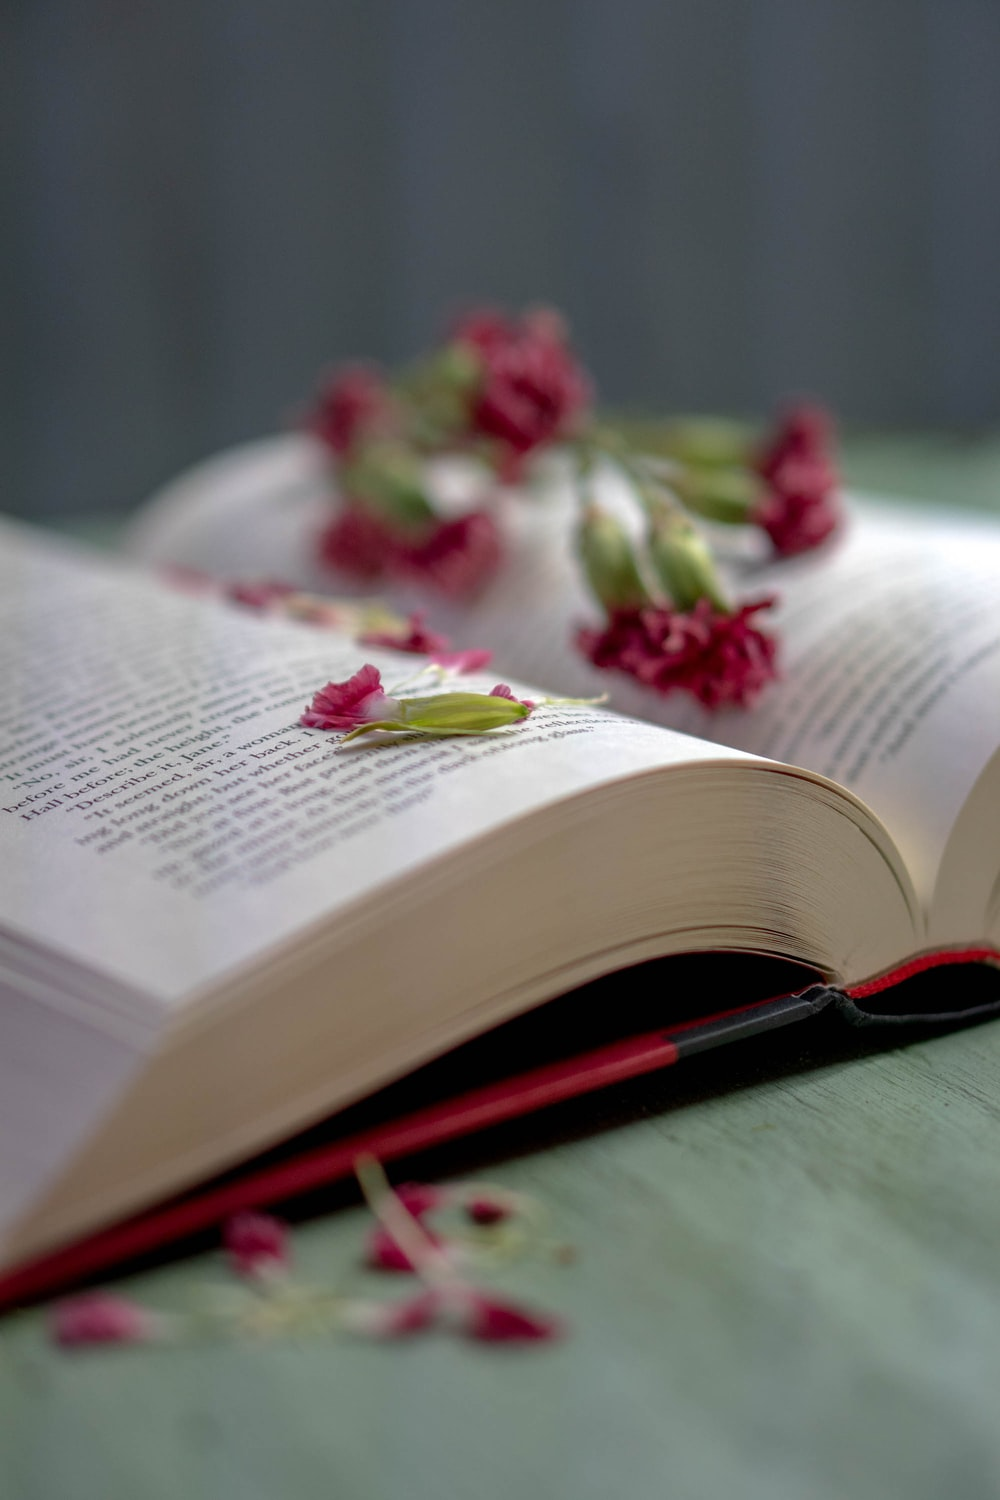 red and white flowers on book page